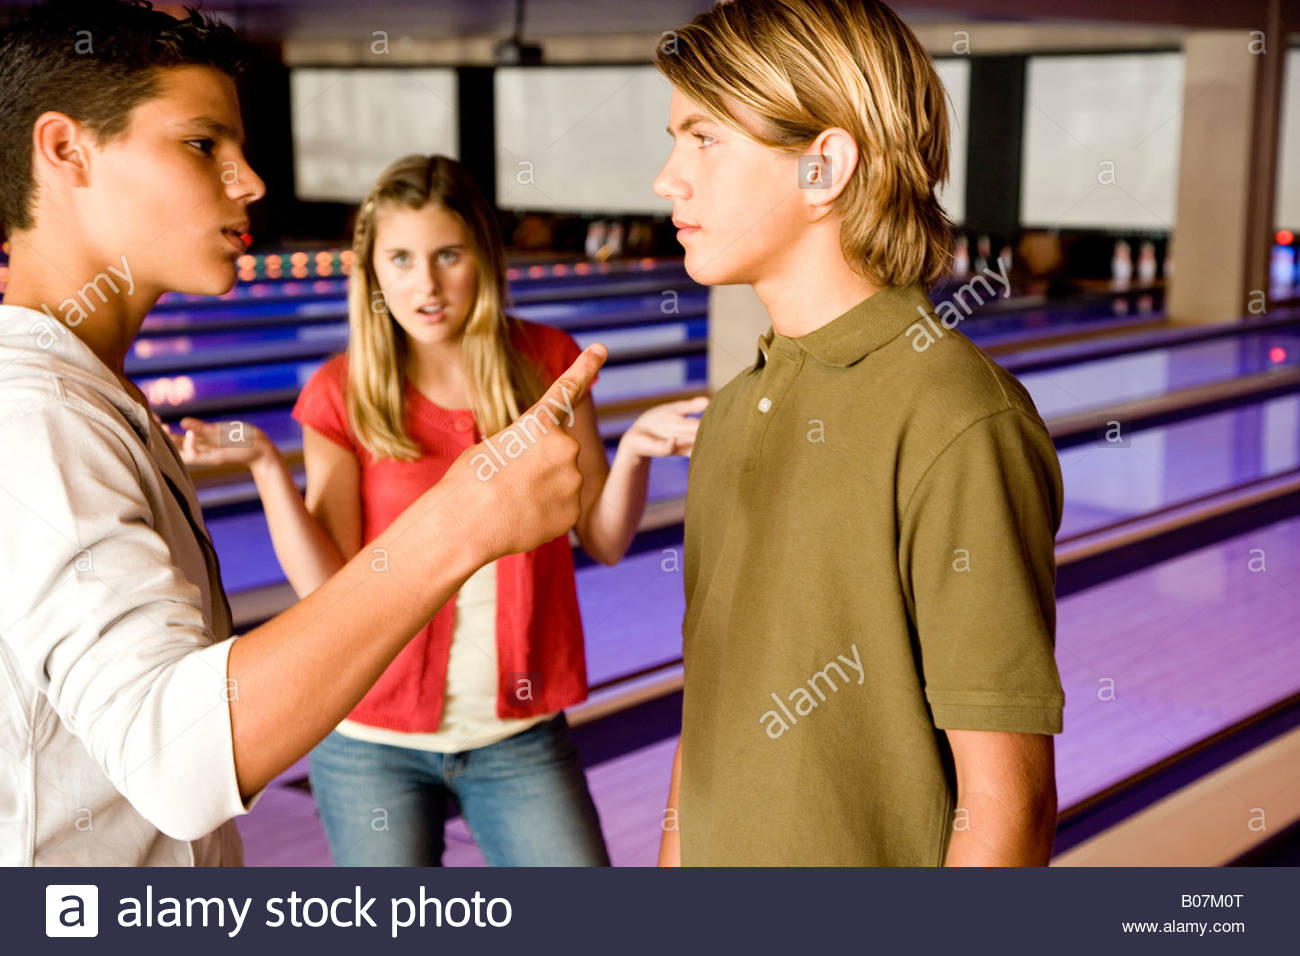 Argument between teenage boys in a bowling alley - Stock Image